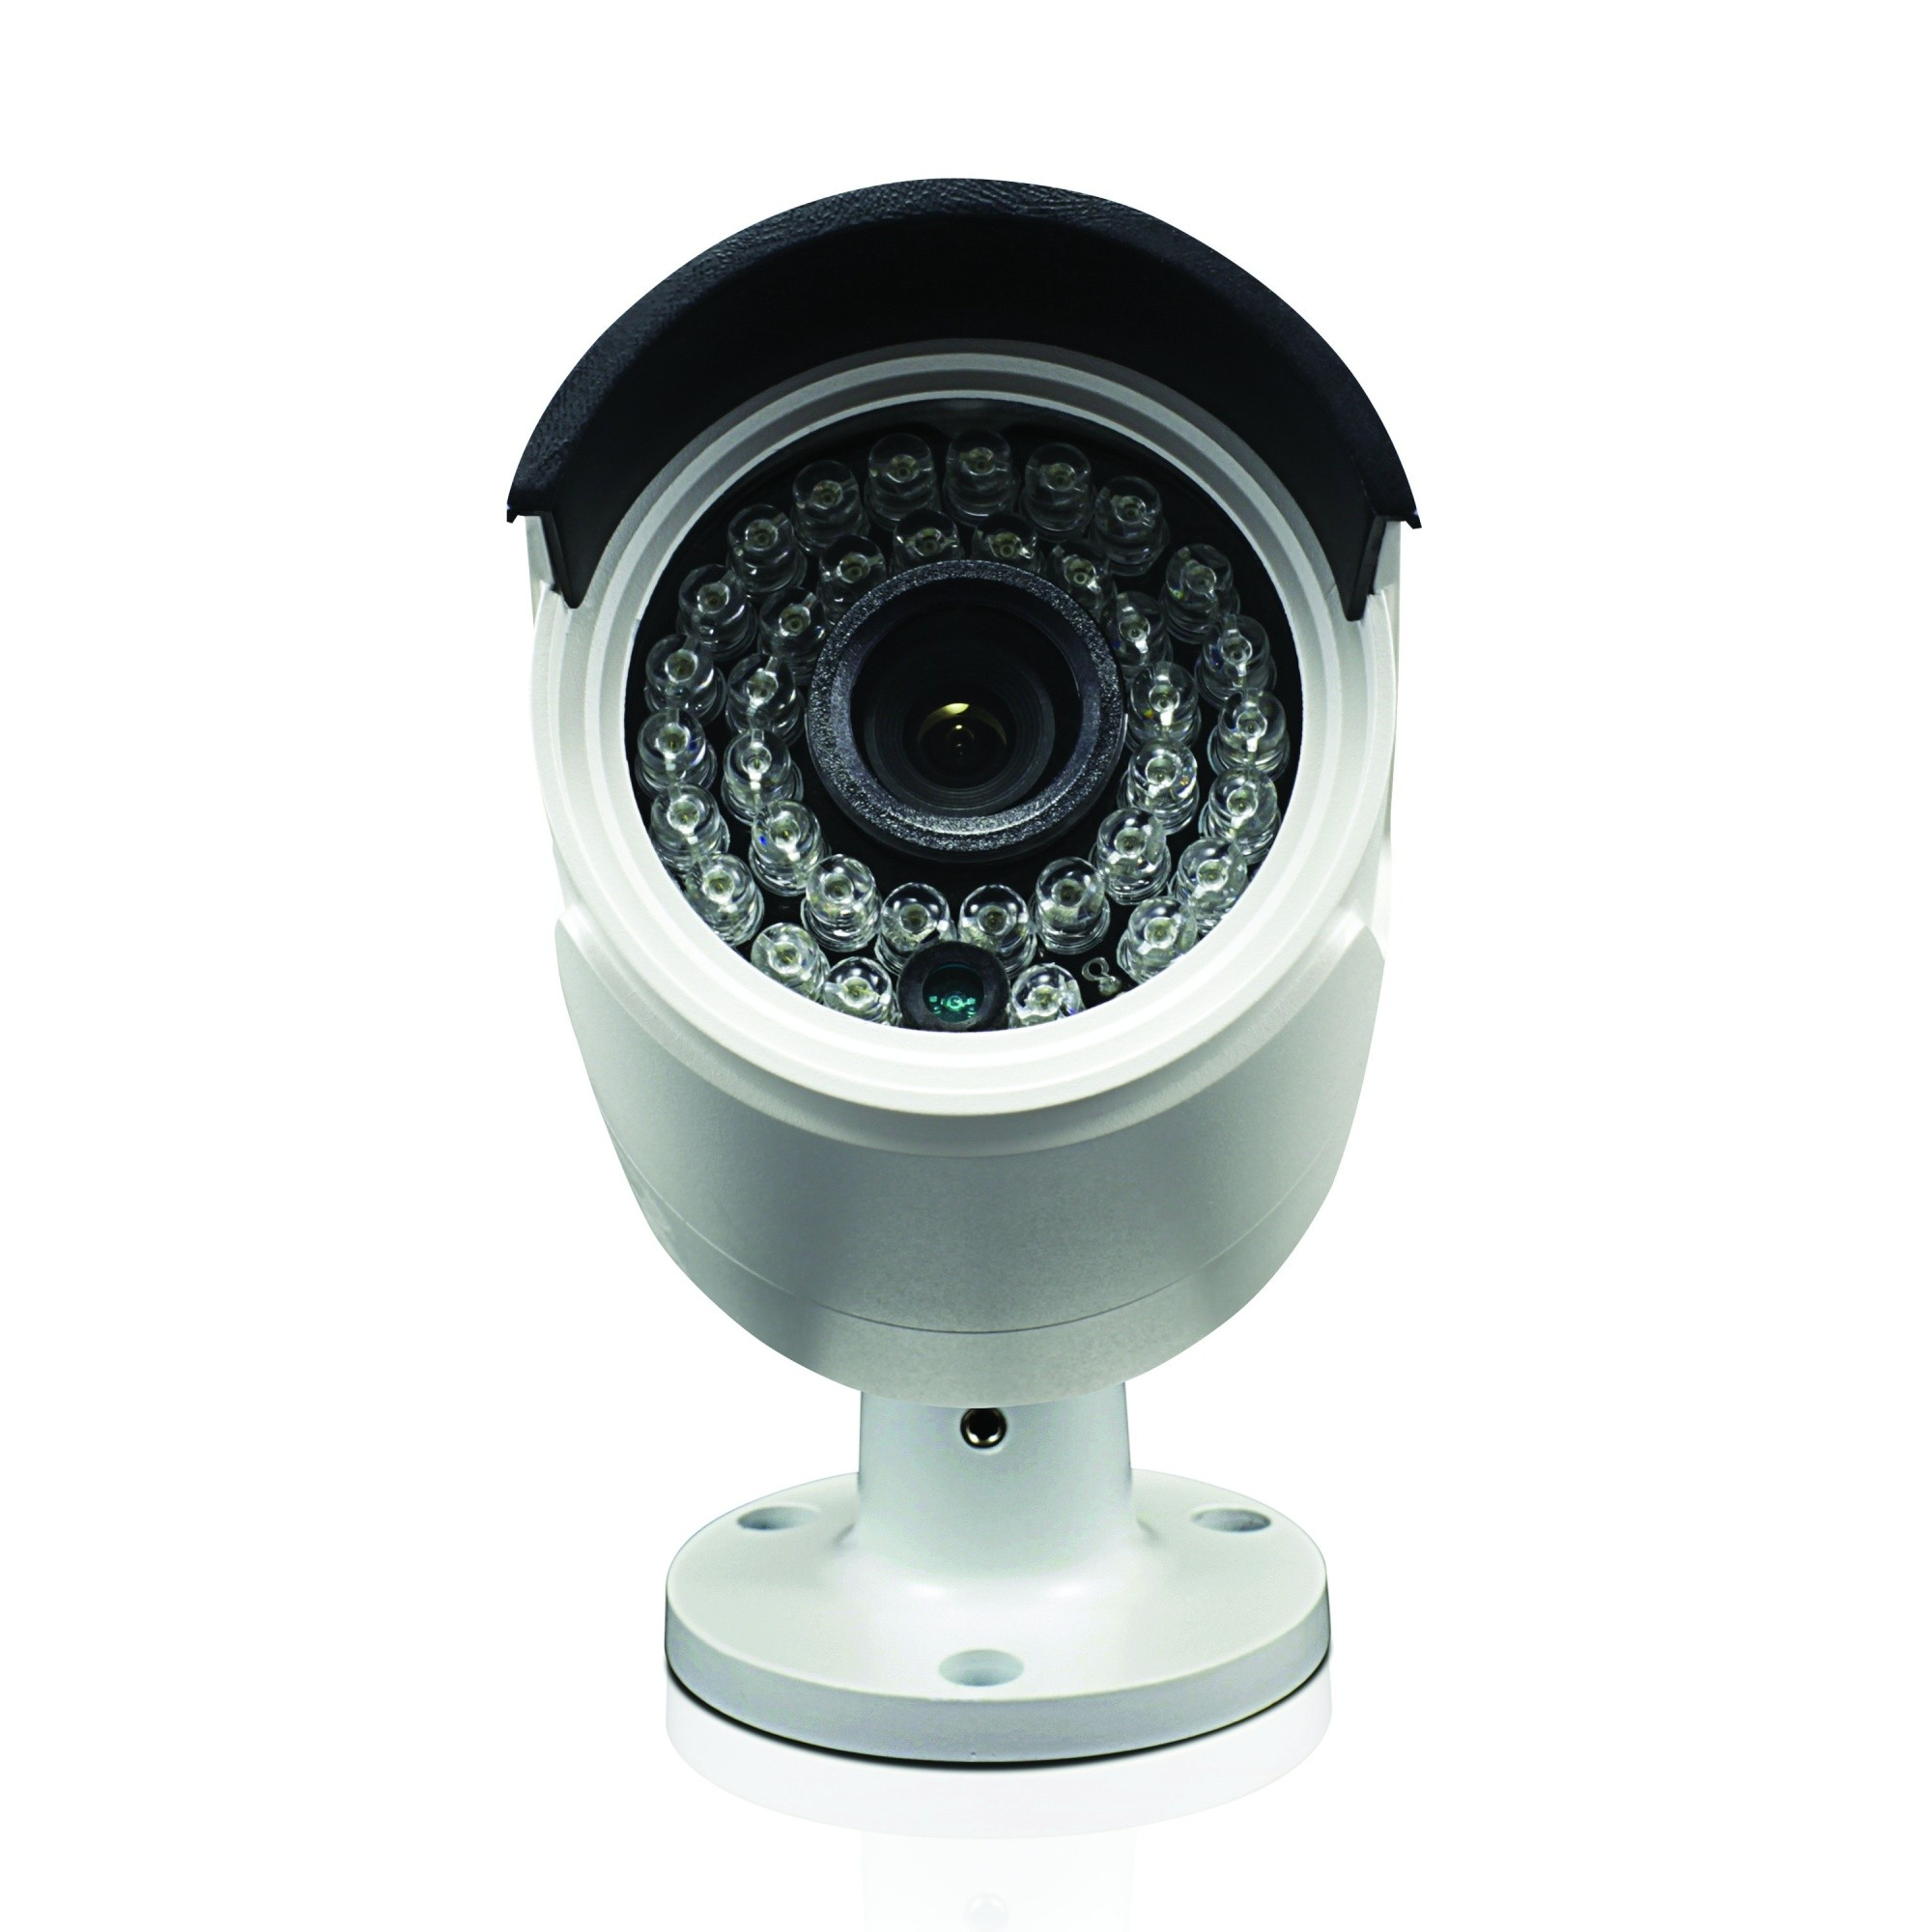 Swann Pro Nhd818 4mp Bullet Camera Security Night Vision